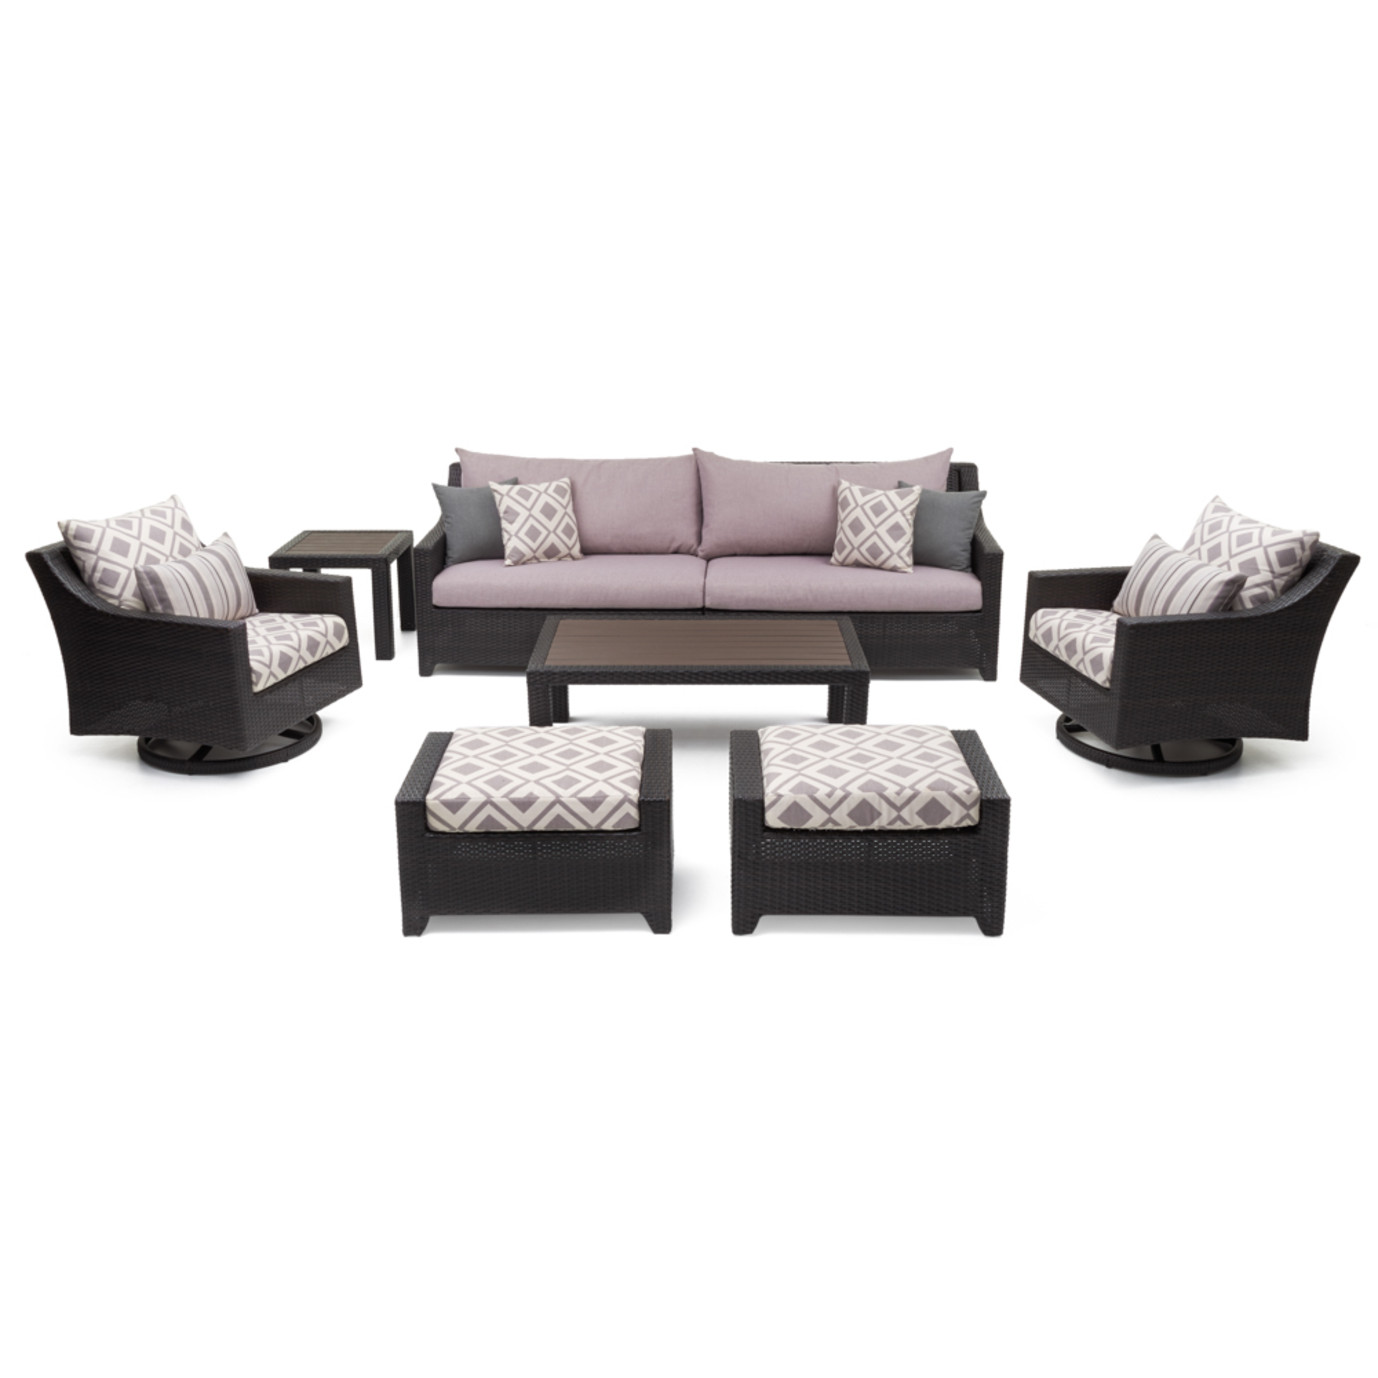 Deco™ 8 Piece Sofa & Club Chair Set - Wisteria Lavender Design